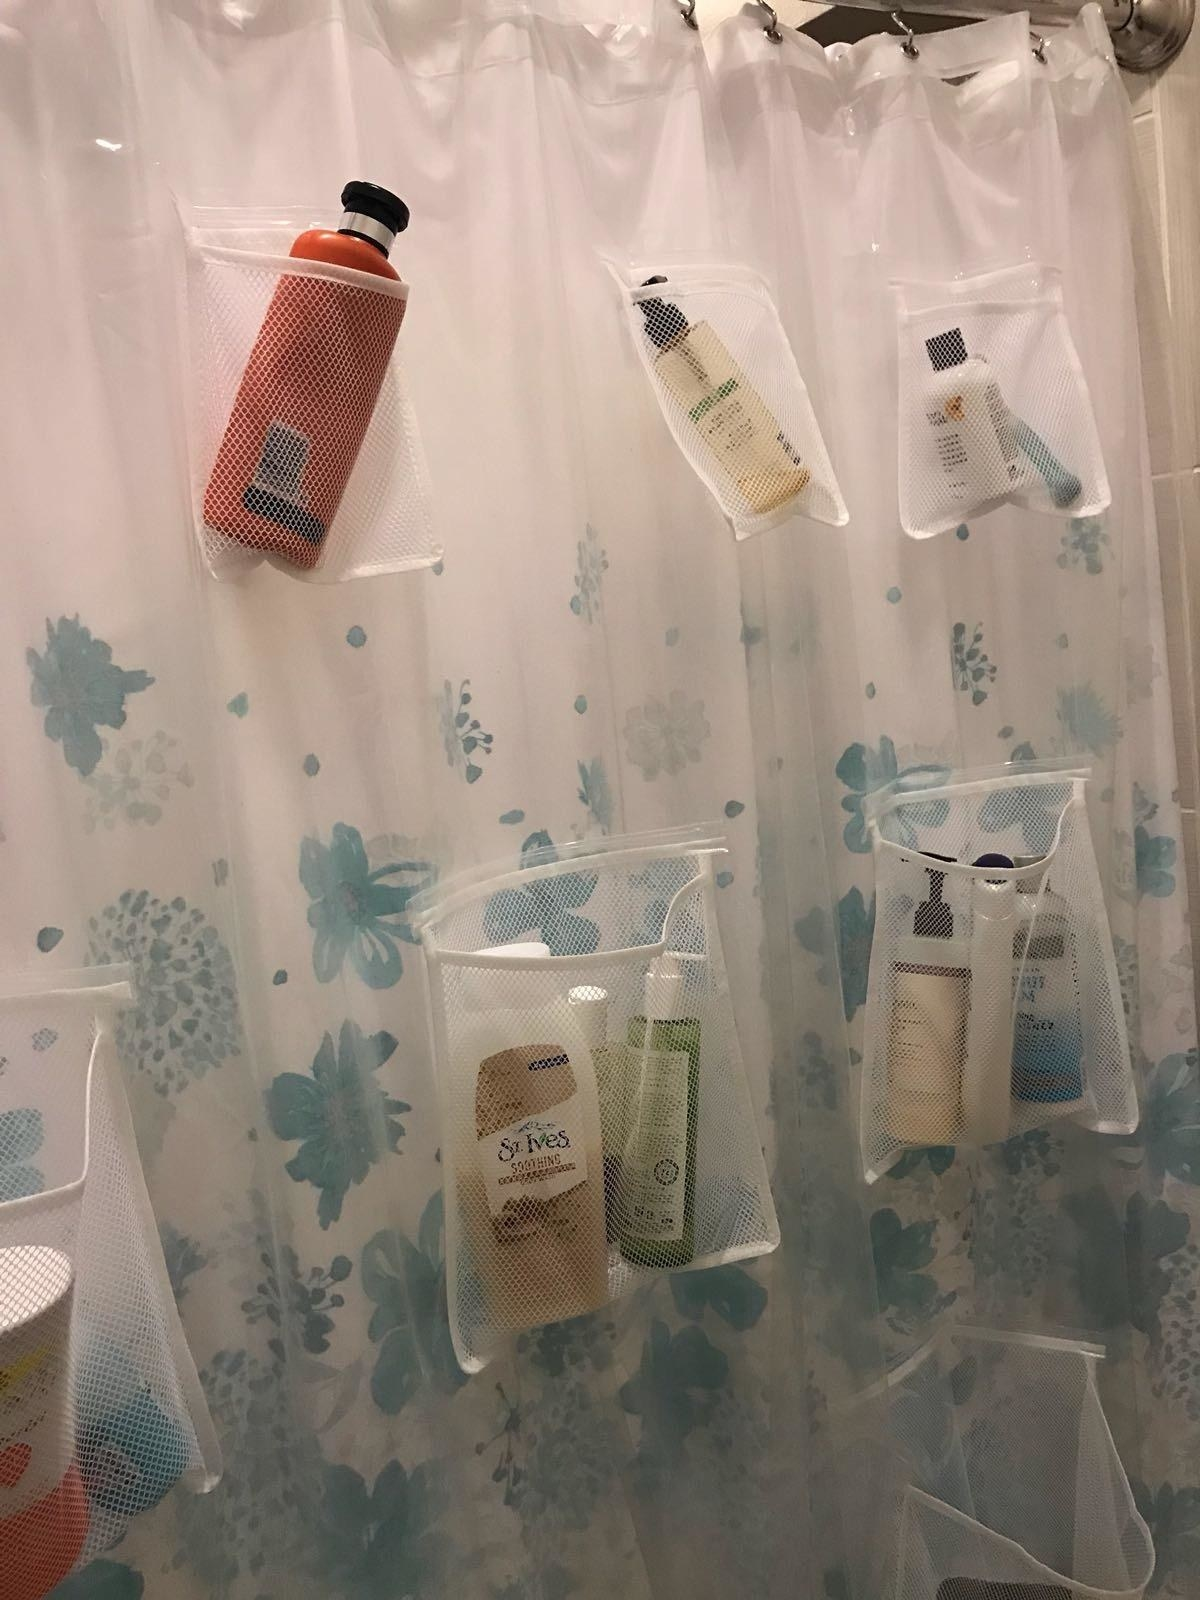 reviewer photo showing the shower curtain with bath products in the pockets